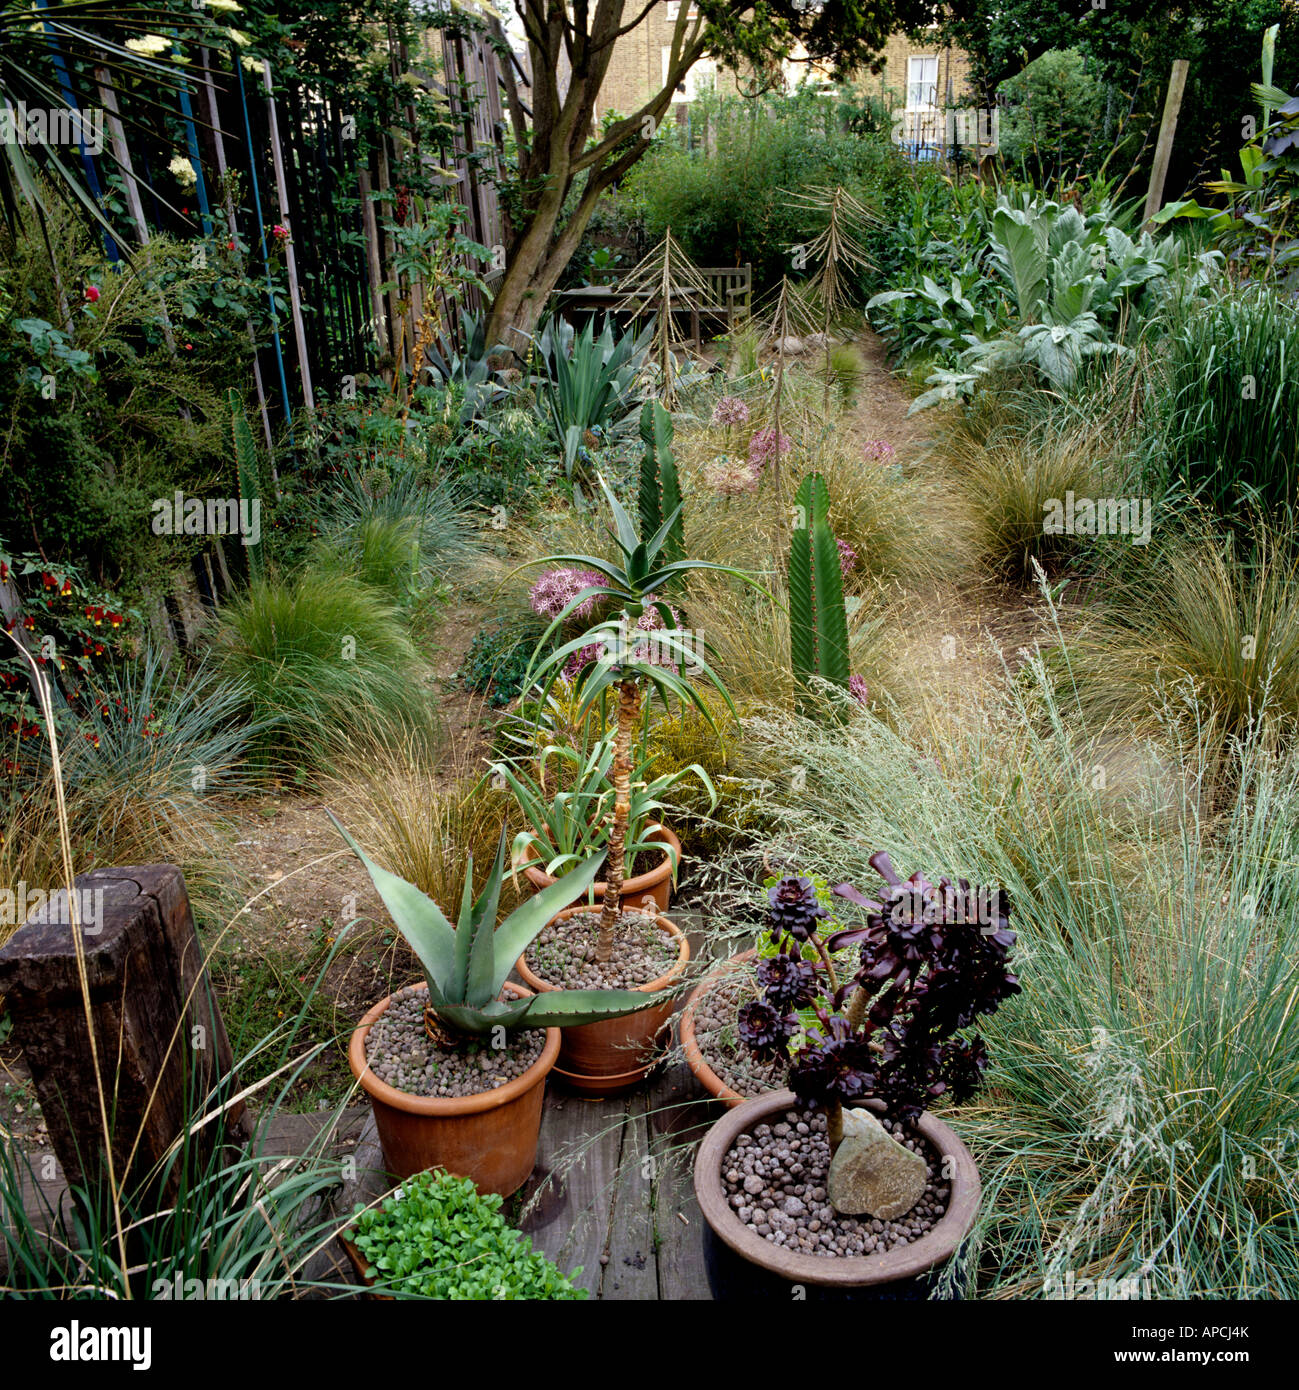 Assortment of low growing New Zealand grasses and yucca plants in London garden - Stock Image